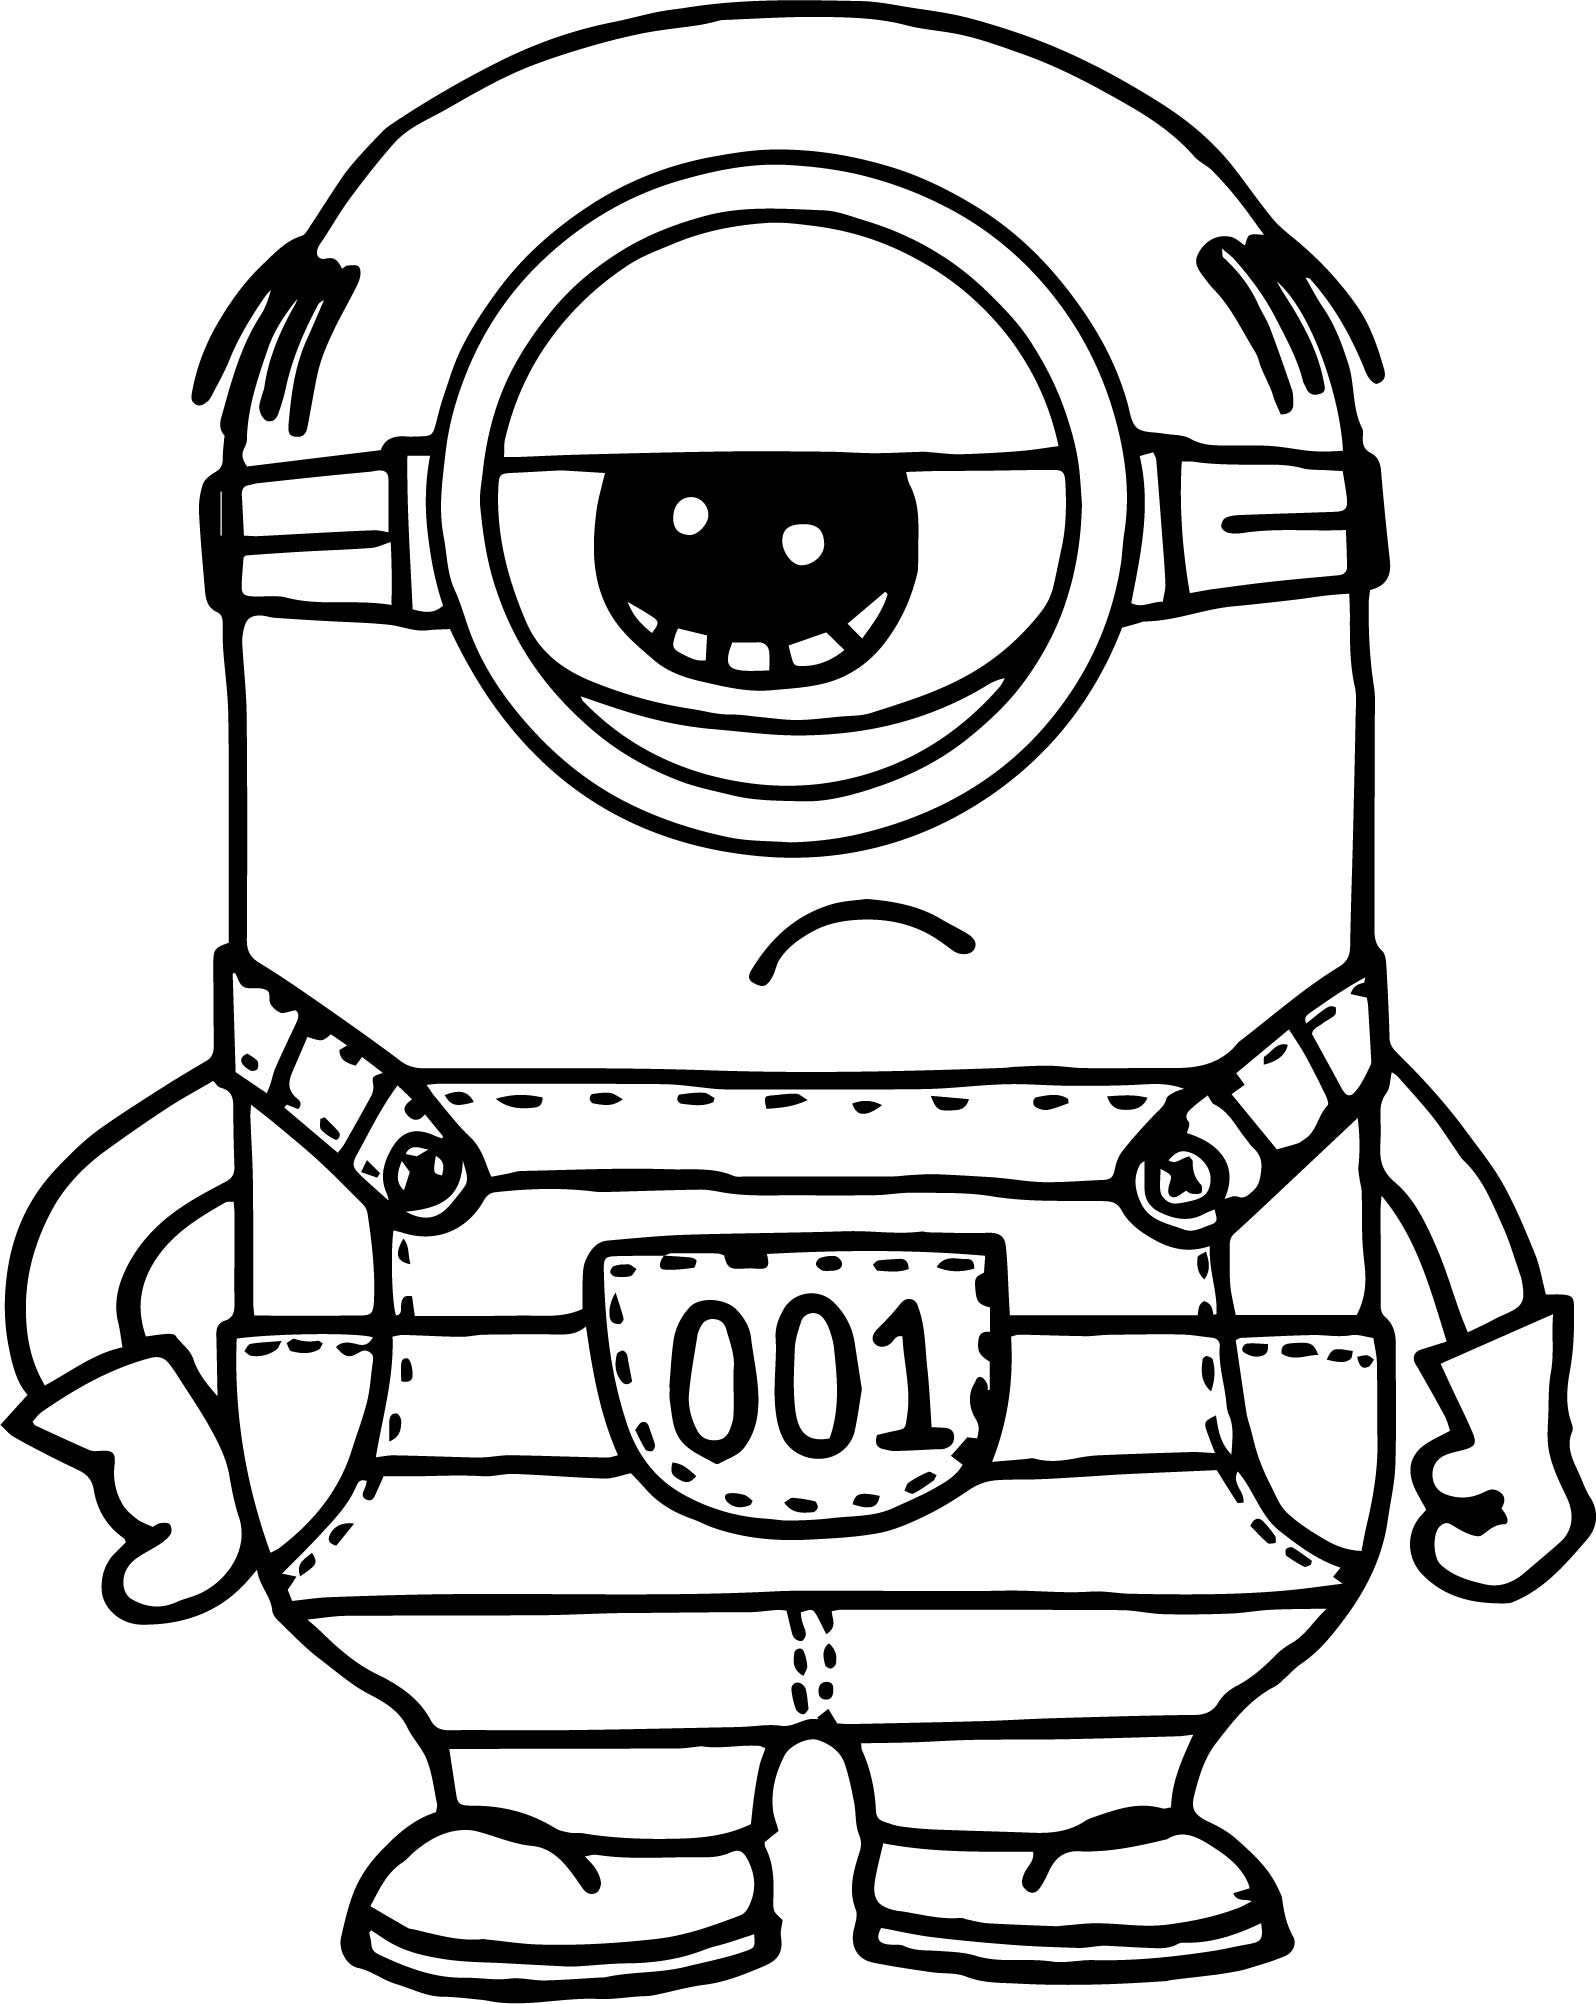 despicable me minions coloring pages cute despicable me minion coloring page free coloring despicable coloring me minions pages